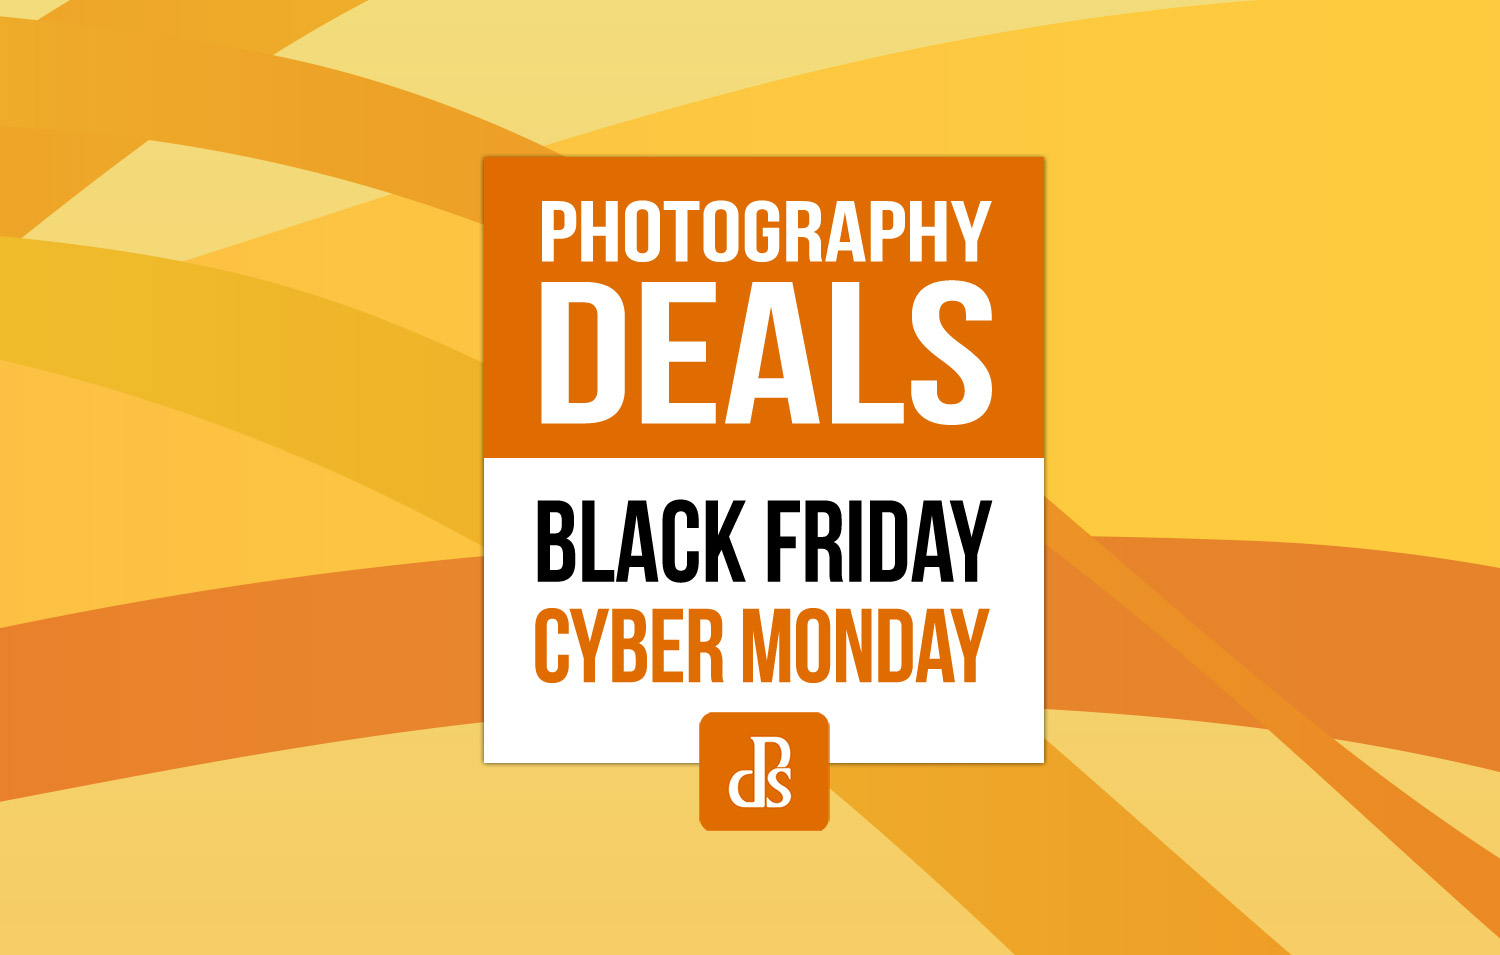 https://i2.wp.com/digital-photography-school.com/wp-content/uploads/2018/11/photography-deals-black-friday.jpg?resize=1500%2C955&ssl=1